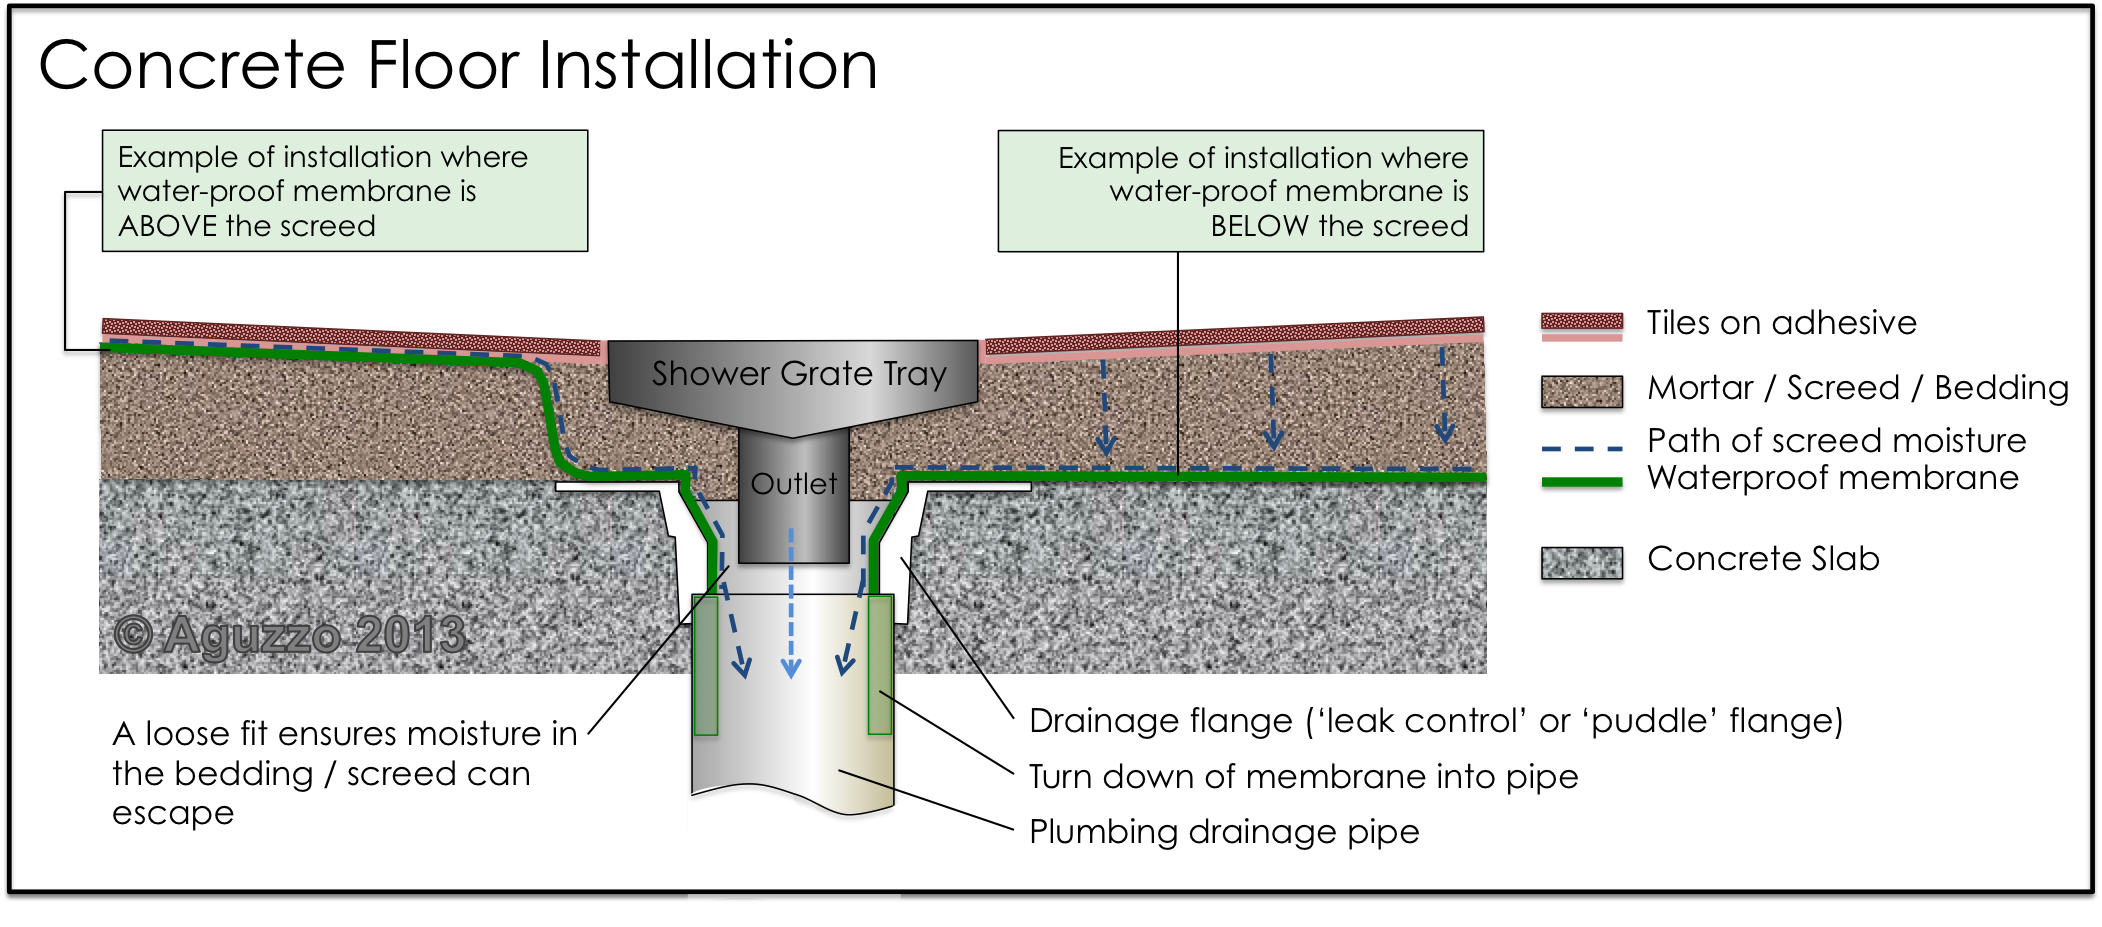 Wiring For Boiler System Diagram further visual merriam Webster   images house plumbing plumbing System besides Hot Water Heating System Schematic as well PosiStrutsPage moreover Water Drainage System Diagram. on residential plumbing system plan